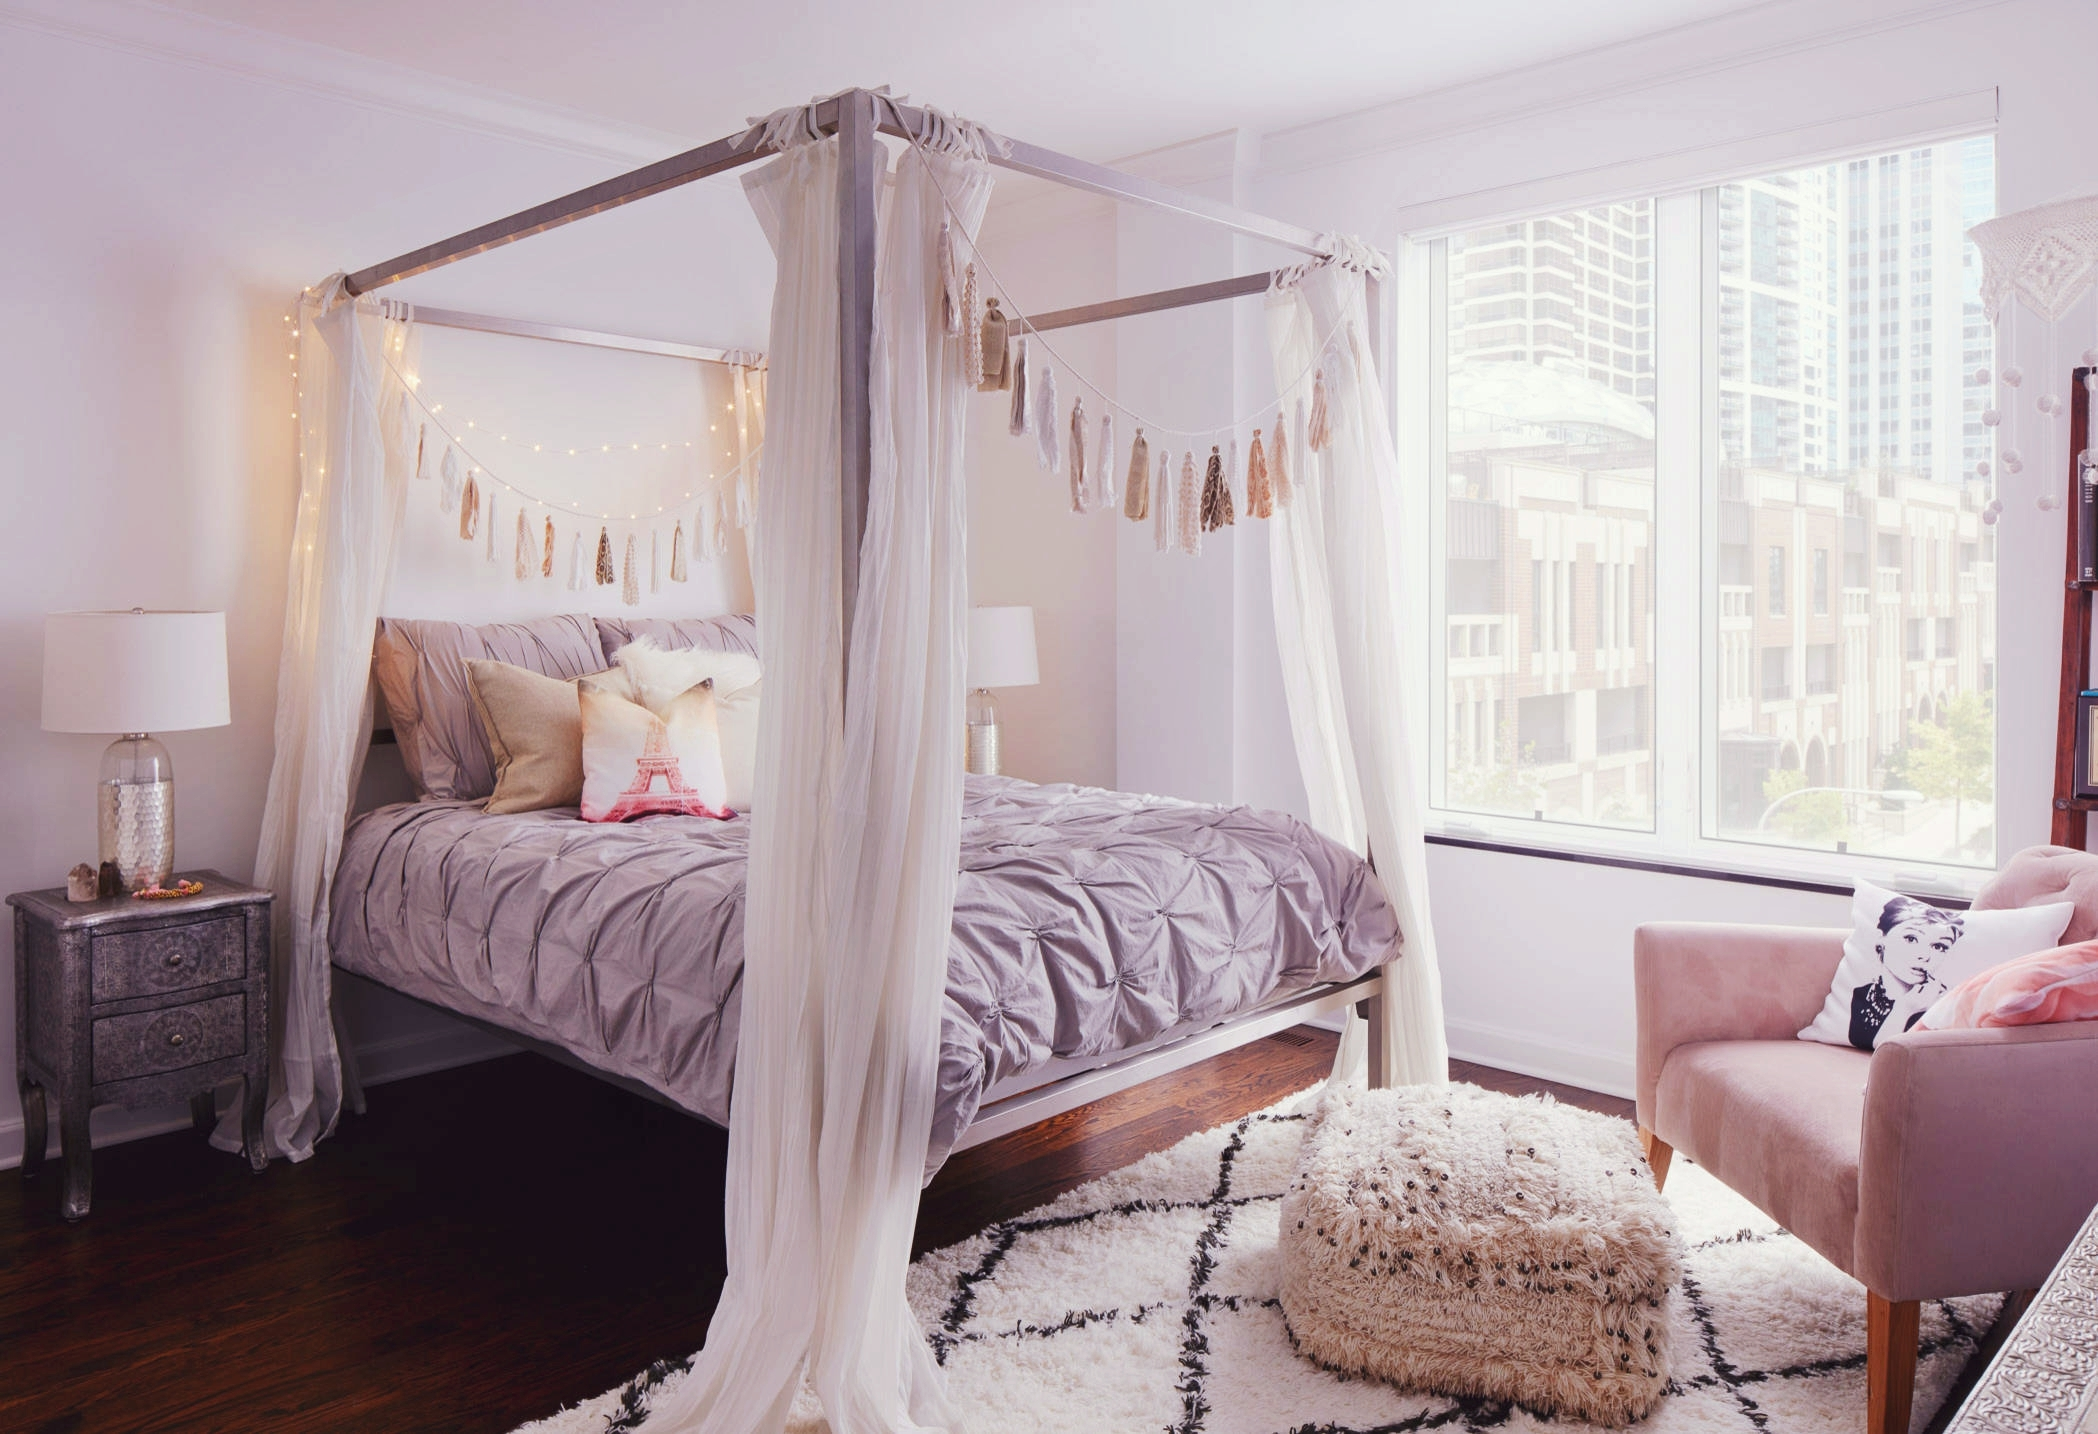 Pastel Bedroom Colors Bohemian Bedroom Inspiration Four Poster Beds With Boho Chic Vibes